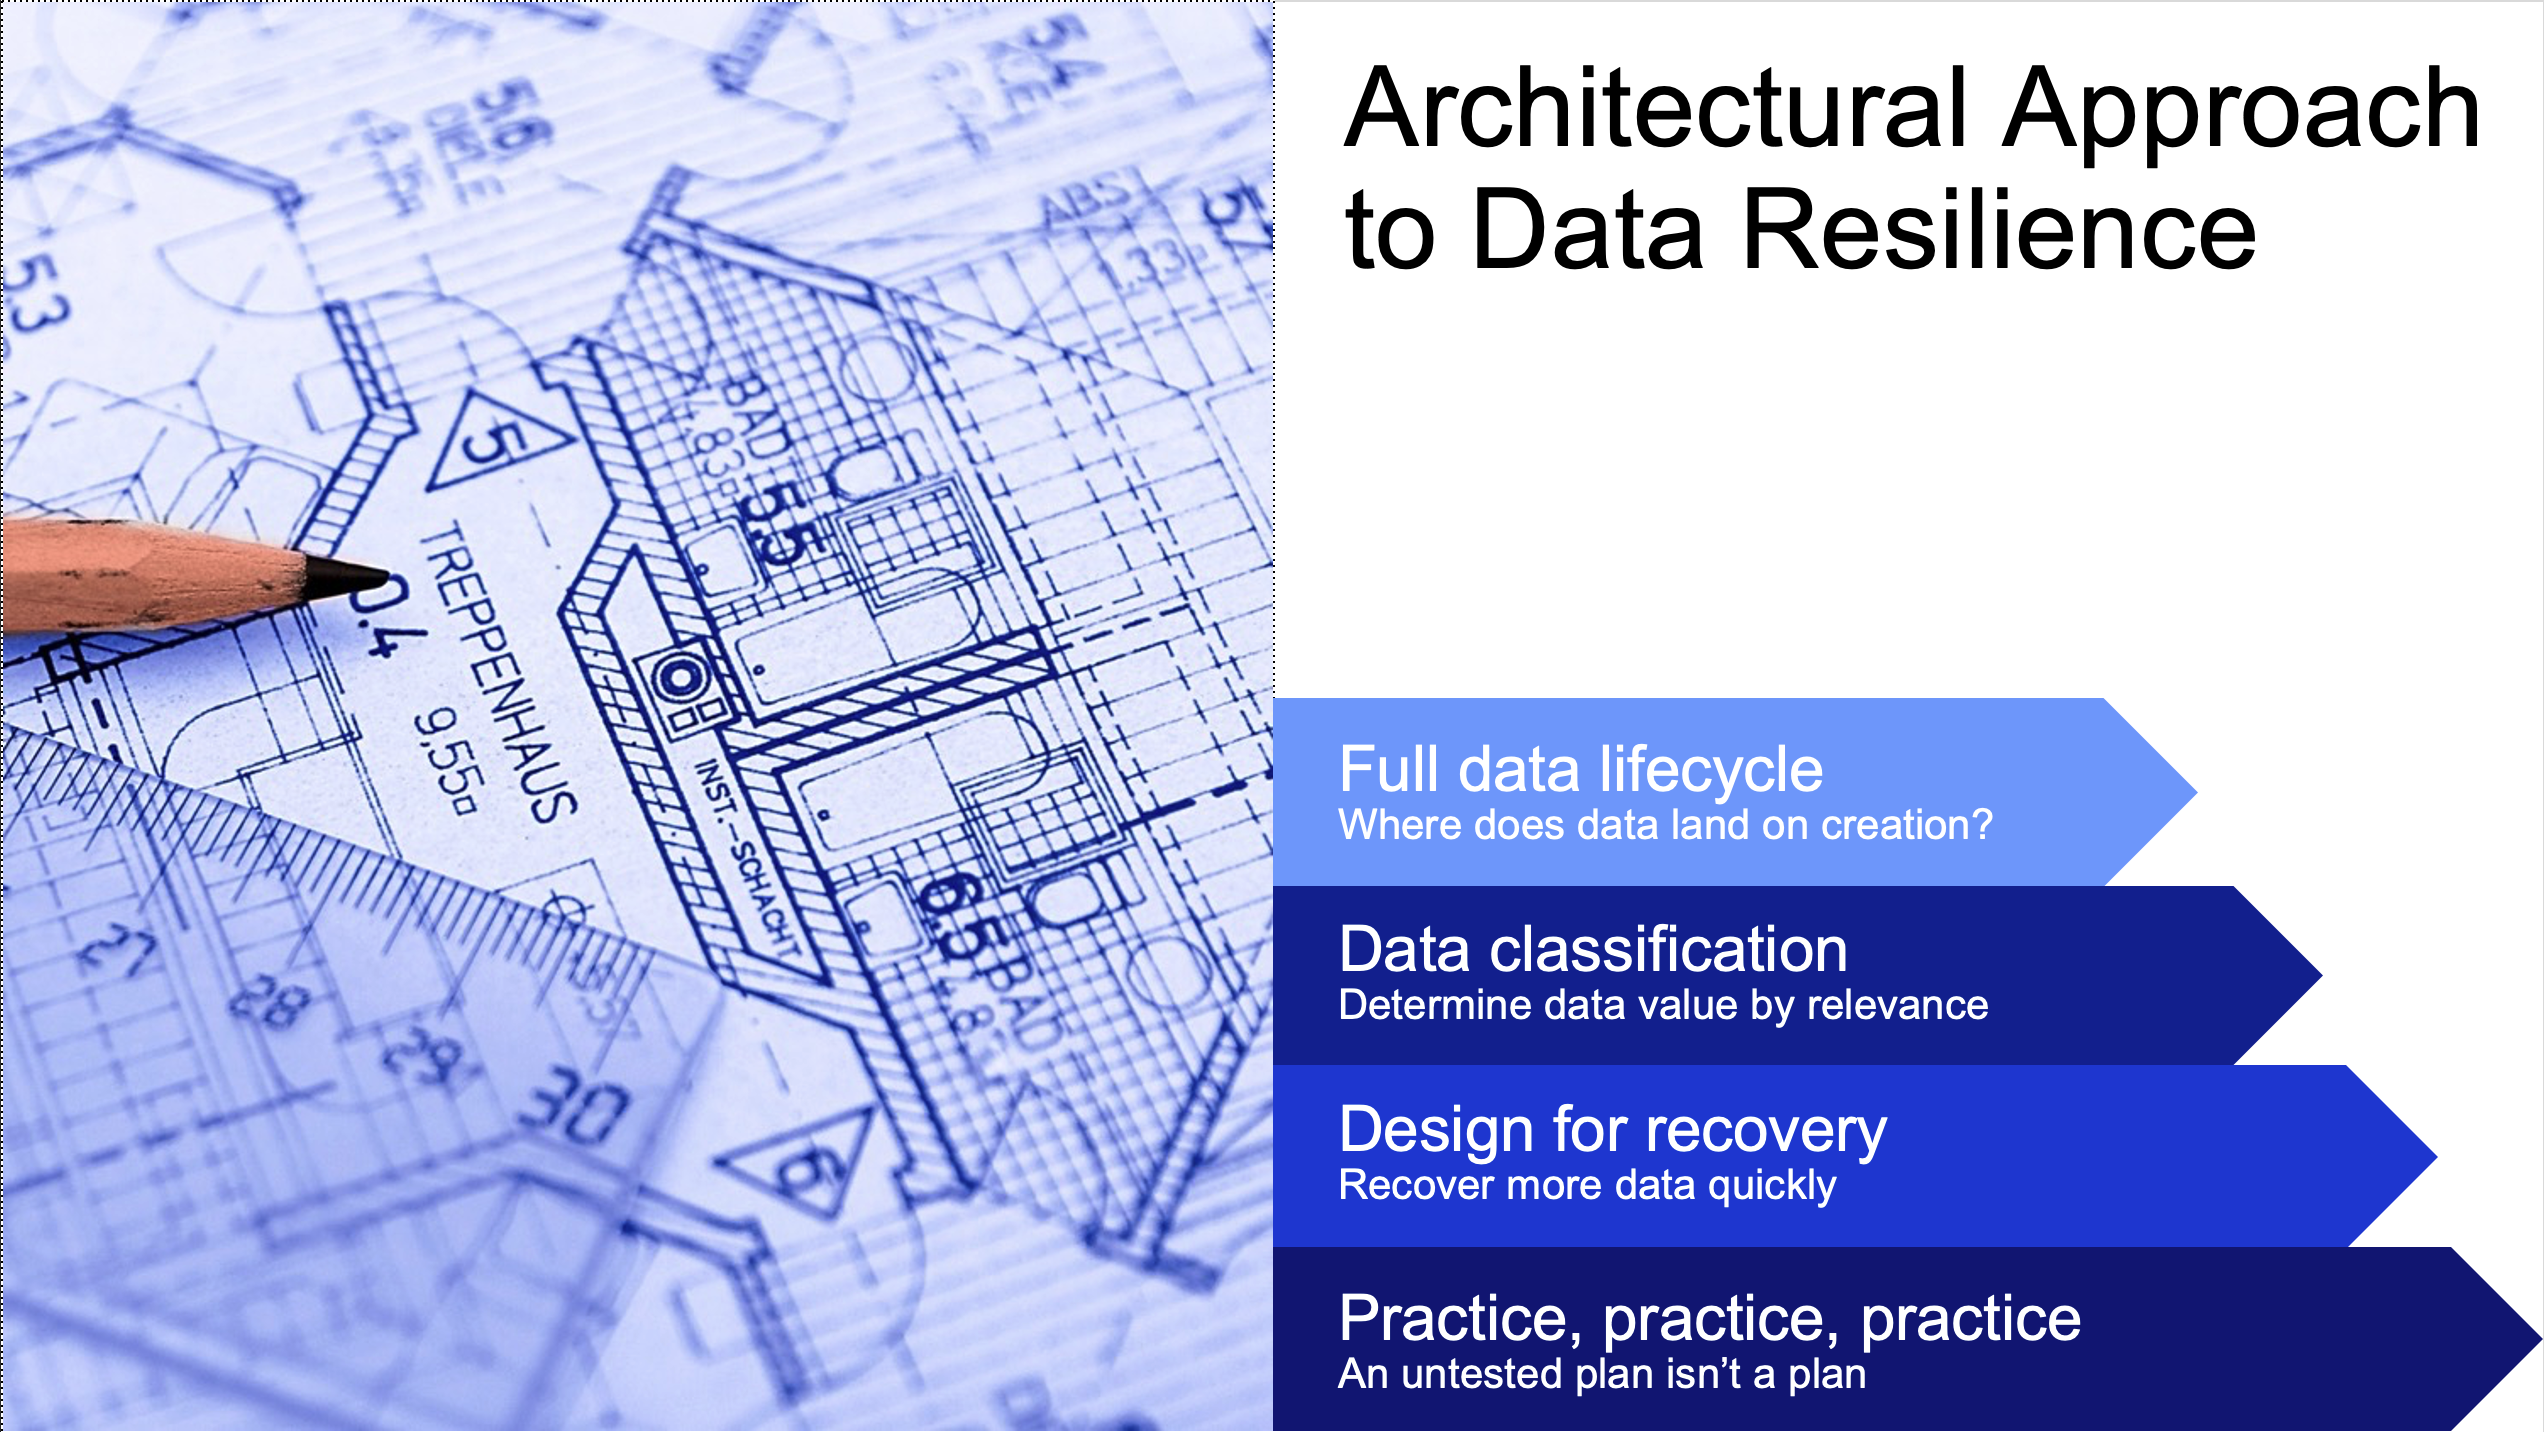 Four Key Items Necessary for a Data Resilient Architecture